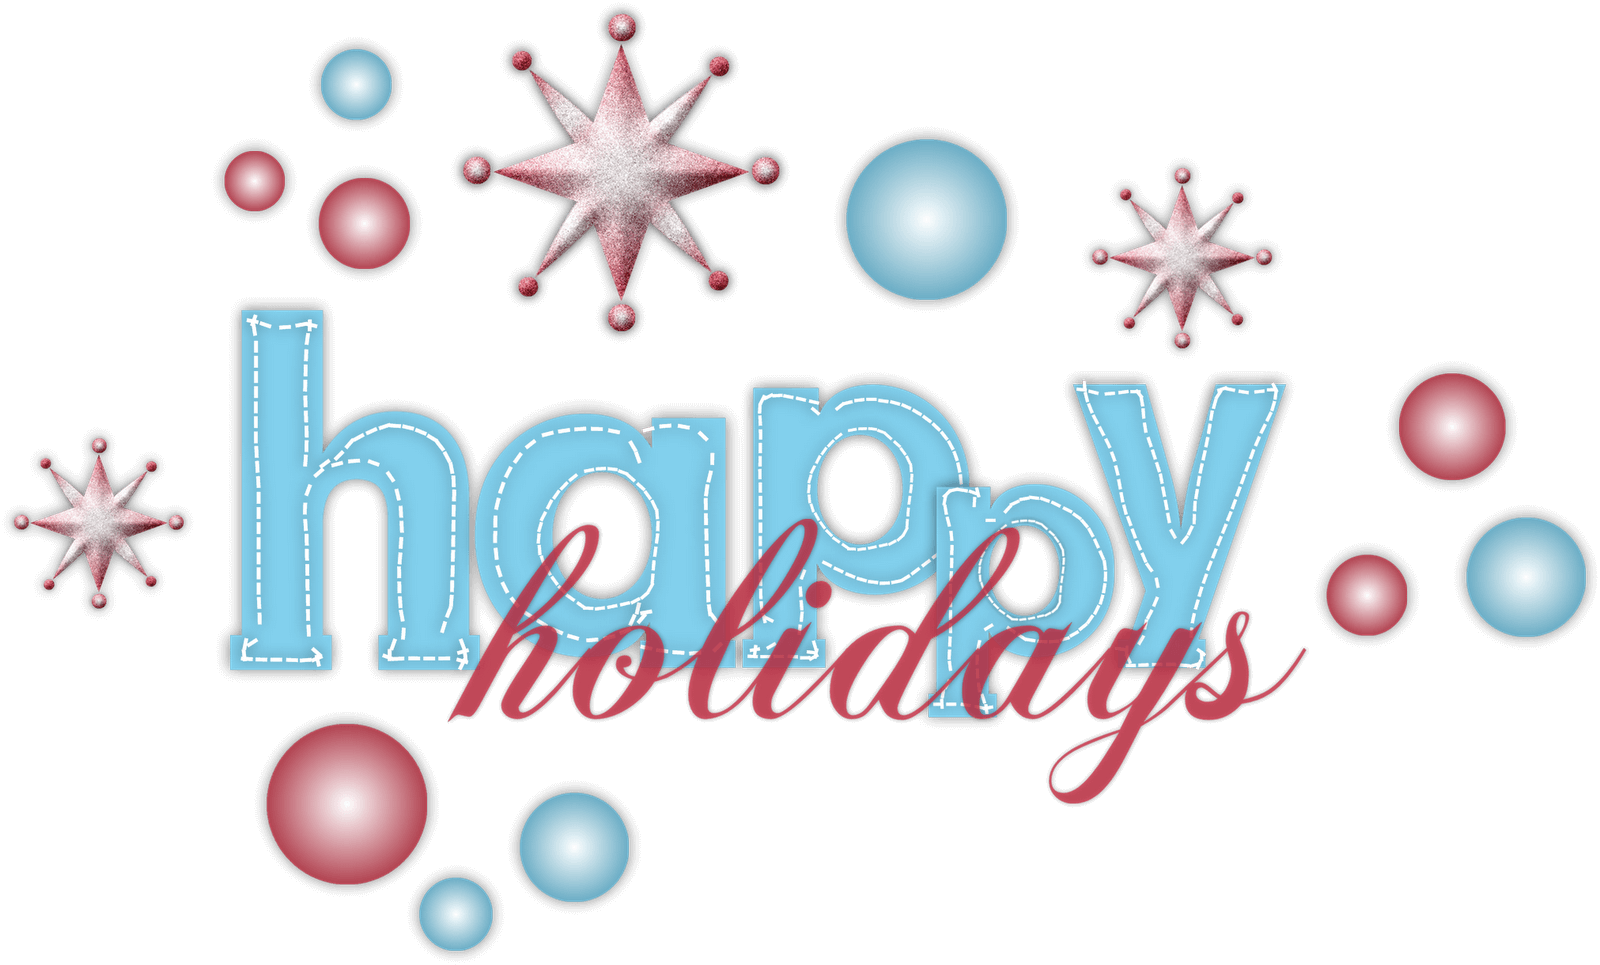 Happy holidays png vintage. Clipart junction free image